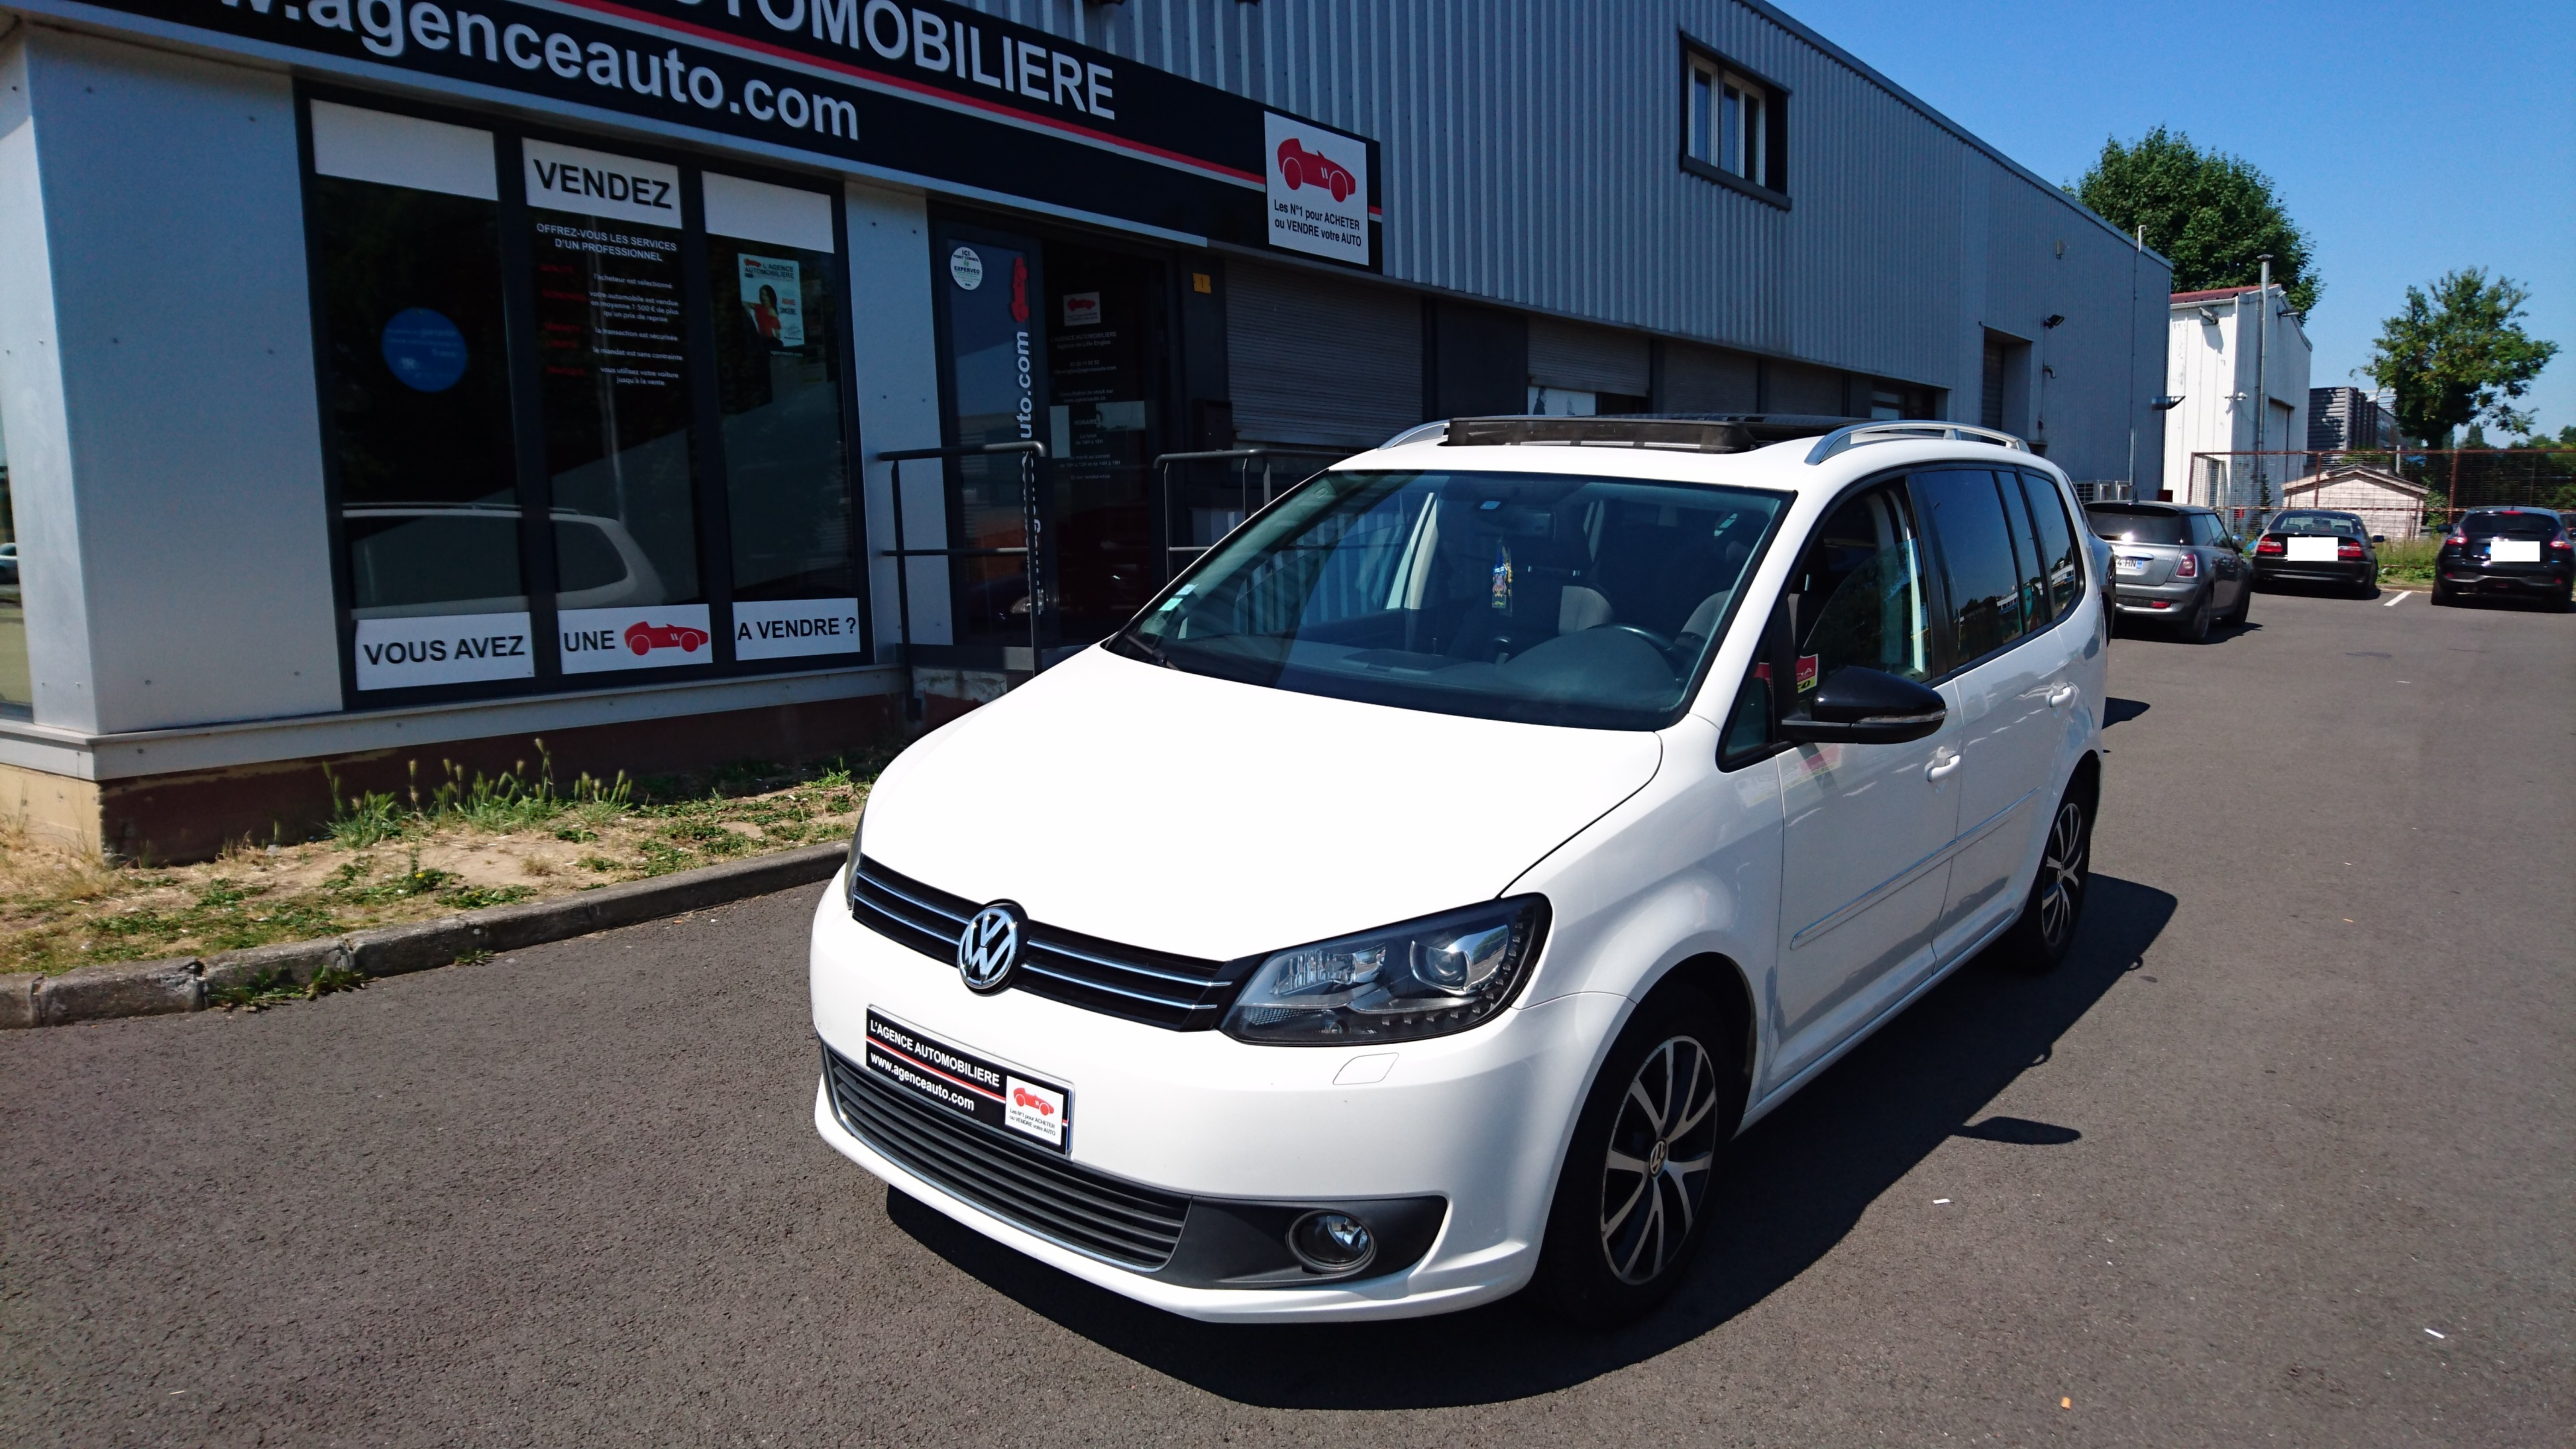 volkswagen touran 2 0 tdi 170ch ch carat occasion lille englos pas cher voiture occasion nord. Black Bedroom Furniture Sets. Home Design Ideas